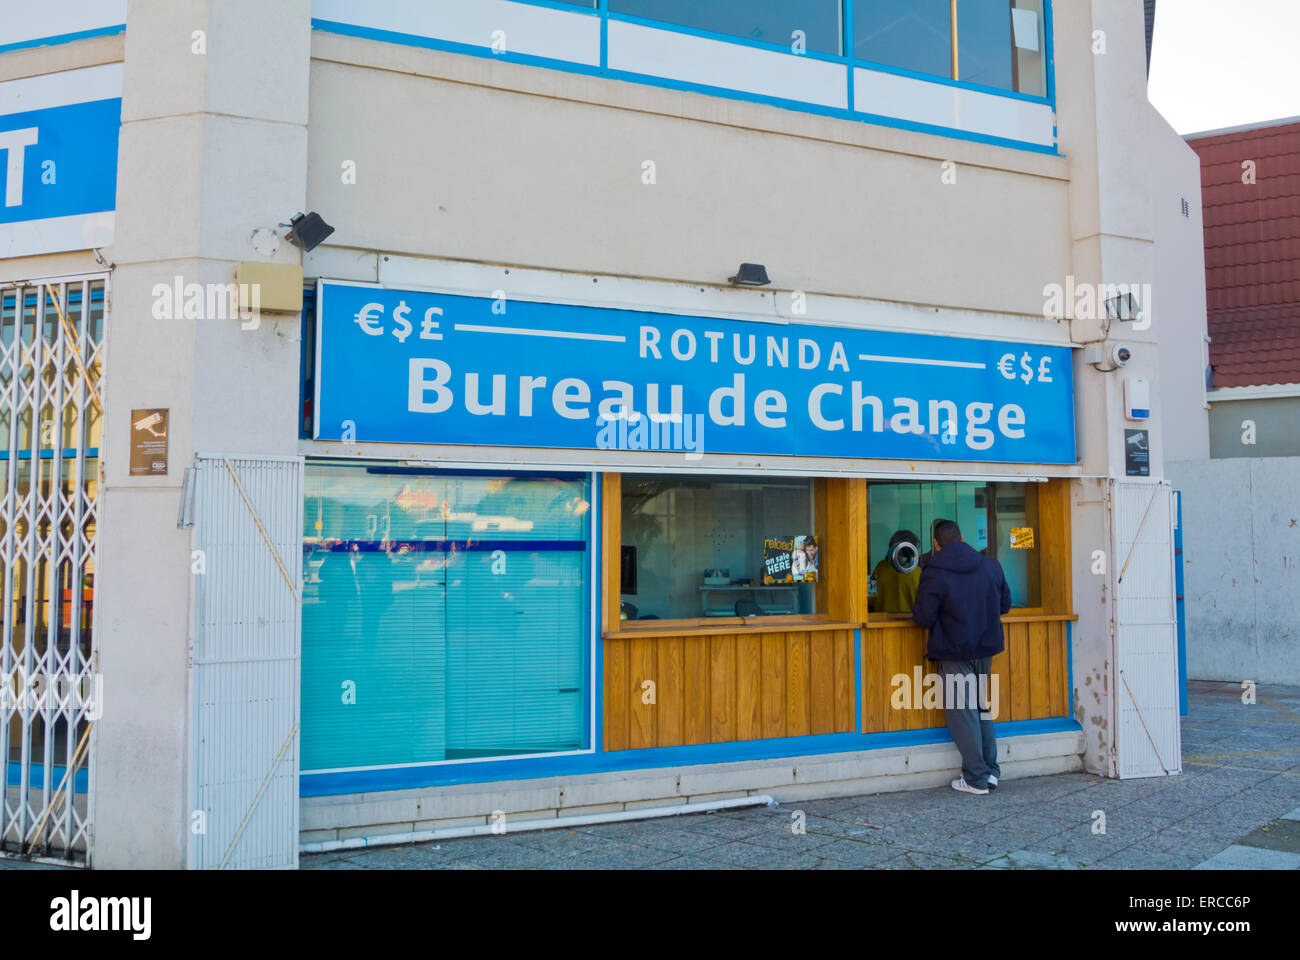 Bureau de Change, money exchange, at the border, Gibraltar, Europe - Stock Image